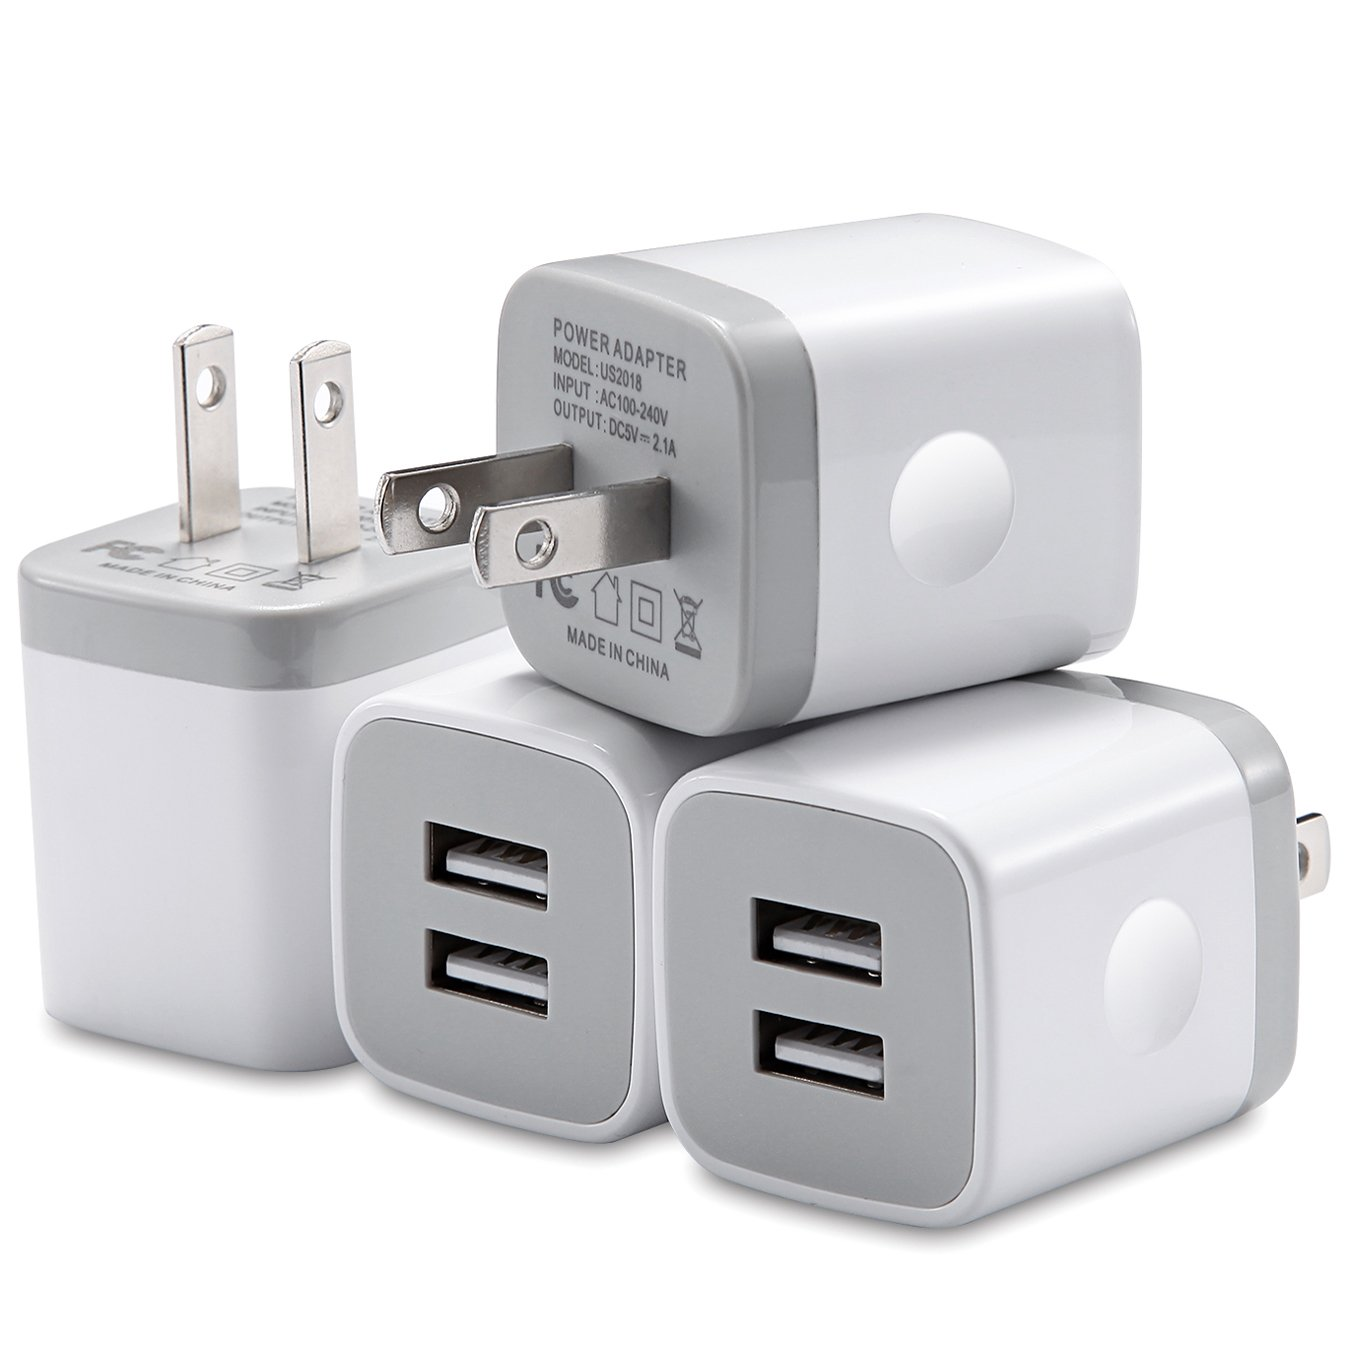 WITPRO USB Wall Charger, 4-Pack 2.1A Dual Port USB Power Adapter Wall Charger Plug Charging Cube Compatible with iPhone X/8/7/6 Plus 5S/4S, iPad, Samsung, LG, Moto, HTC, Android Phones (White)